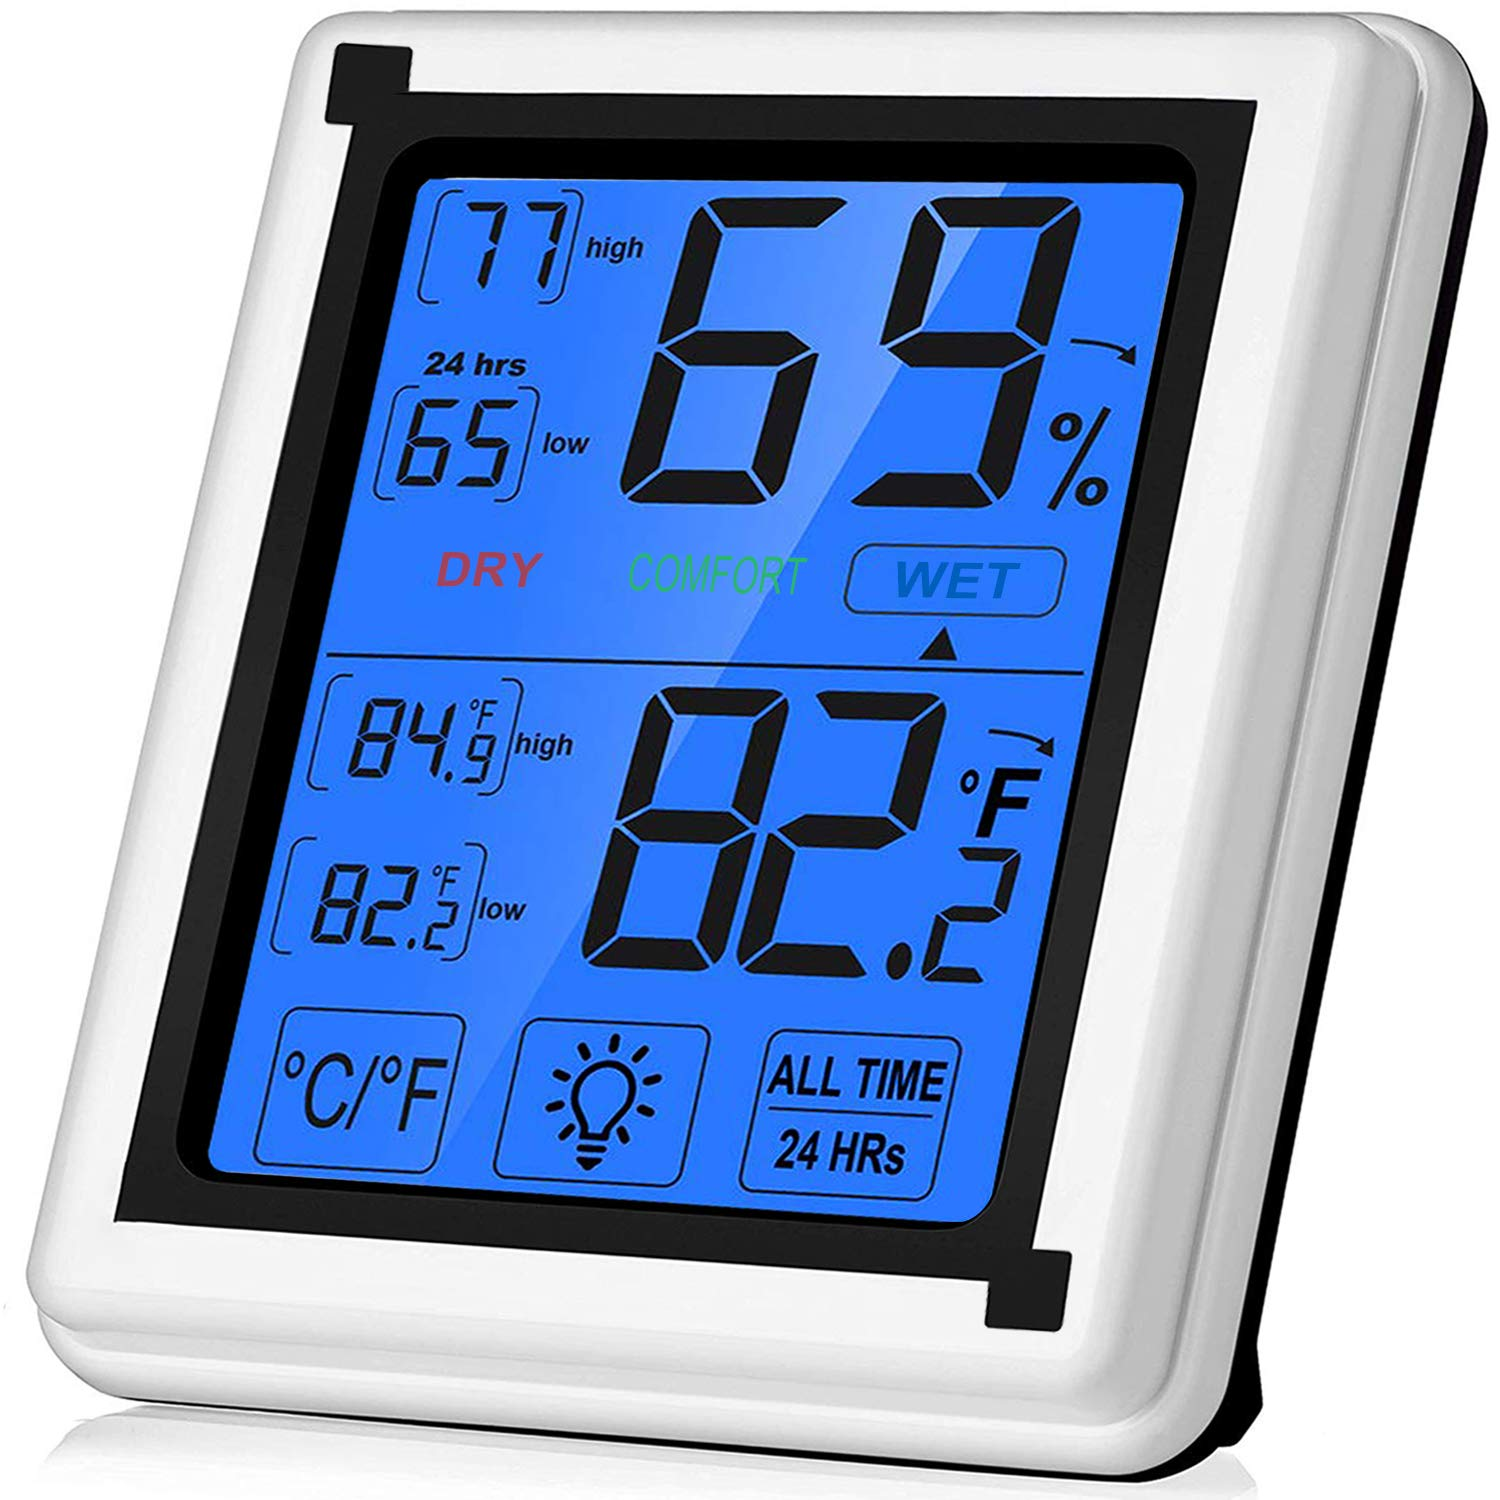 Large Touchscreen Digital Hygrometer Indoor Thermometer Humidity Monitor with Backlight for Home, Office, Nursing Room, Greenhouse, Warehouse and More (Battery Included) by TPFOON